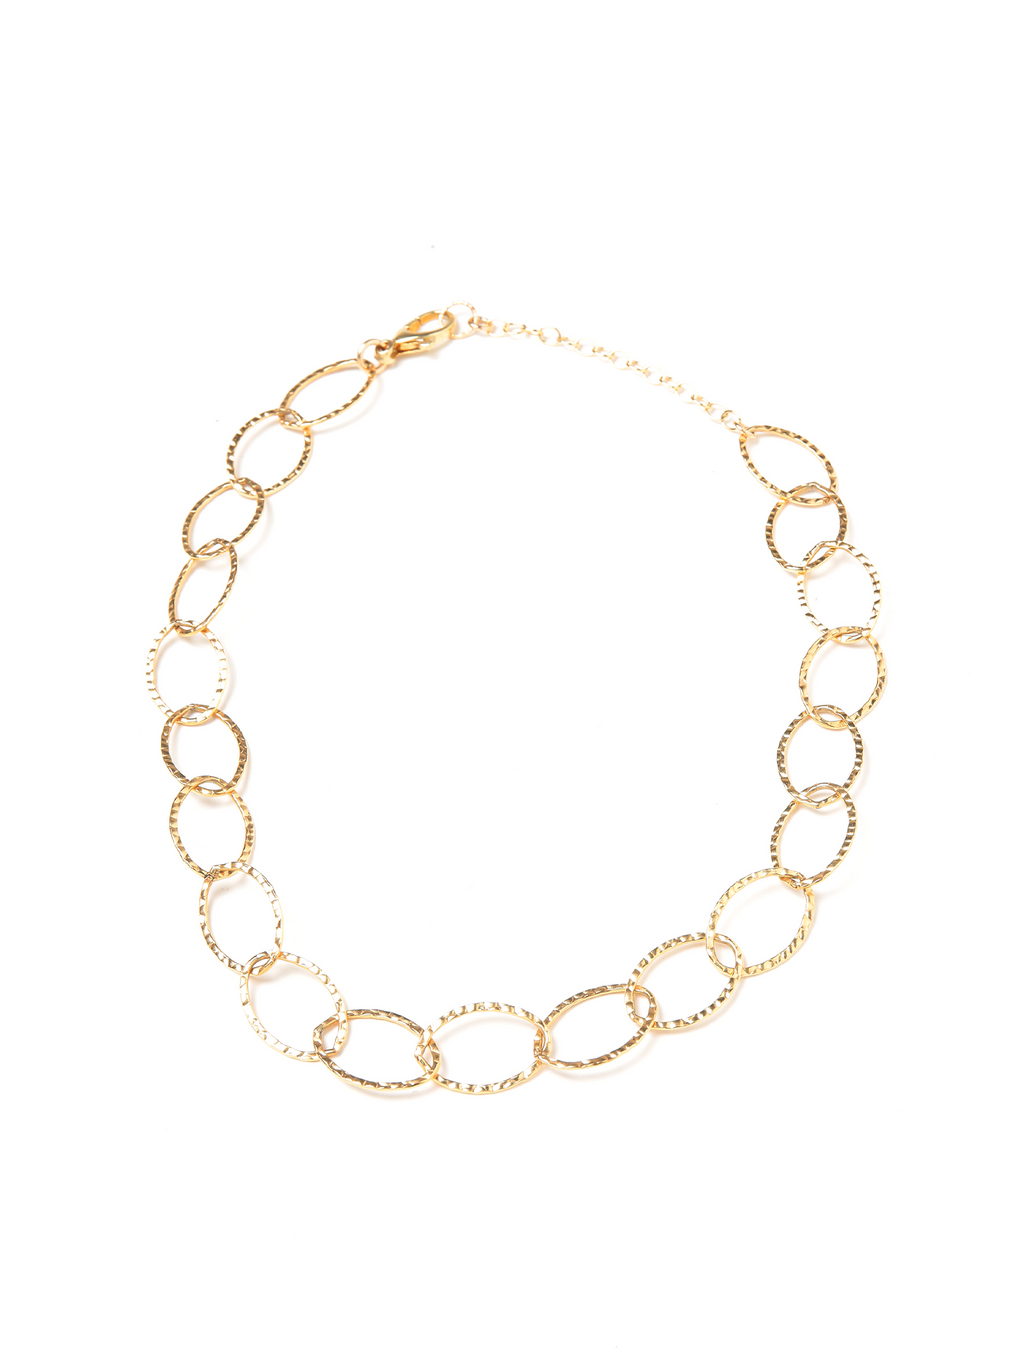 Margo Morrison Gold Open Link Chain Necklace 14k Gold Filled